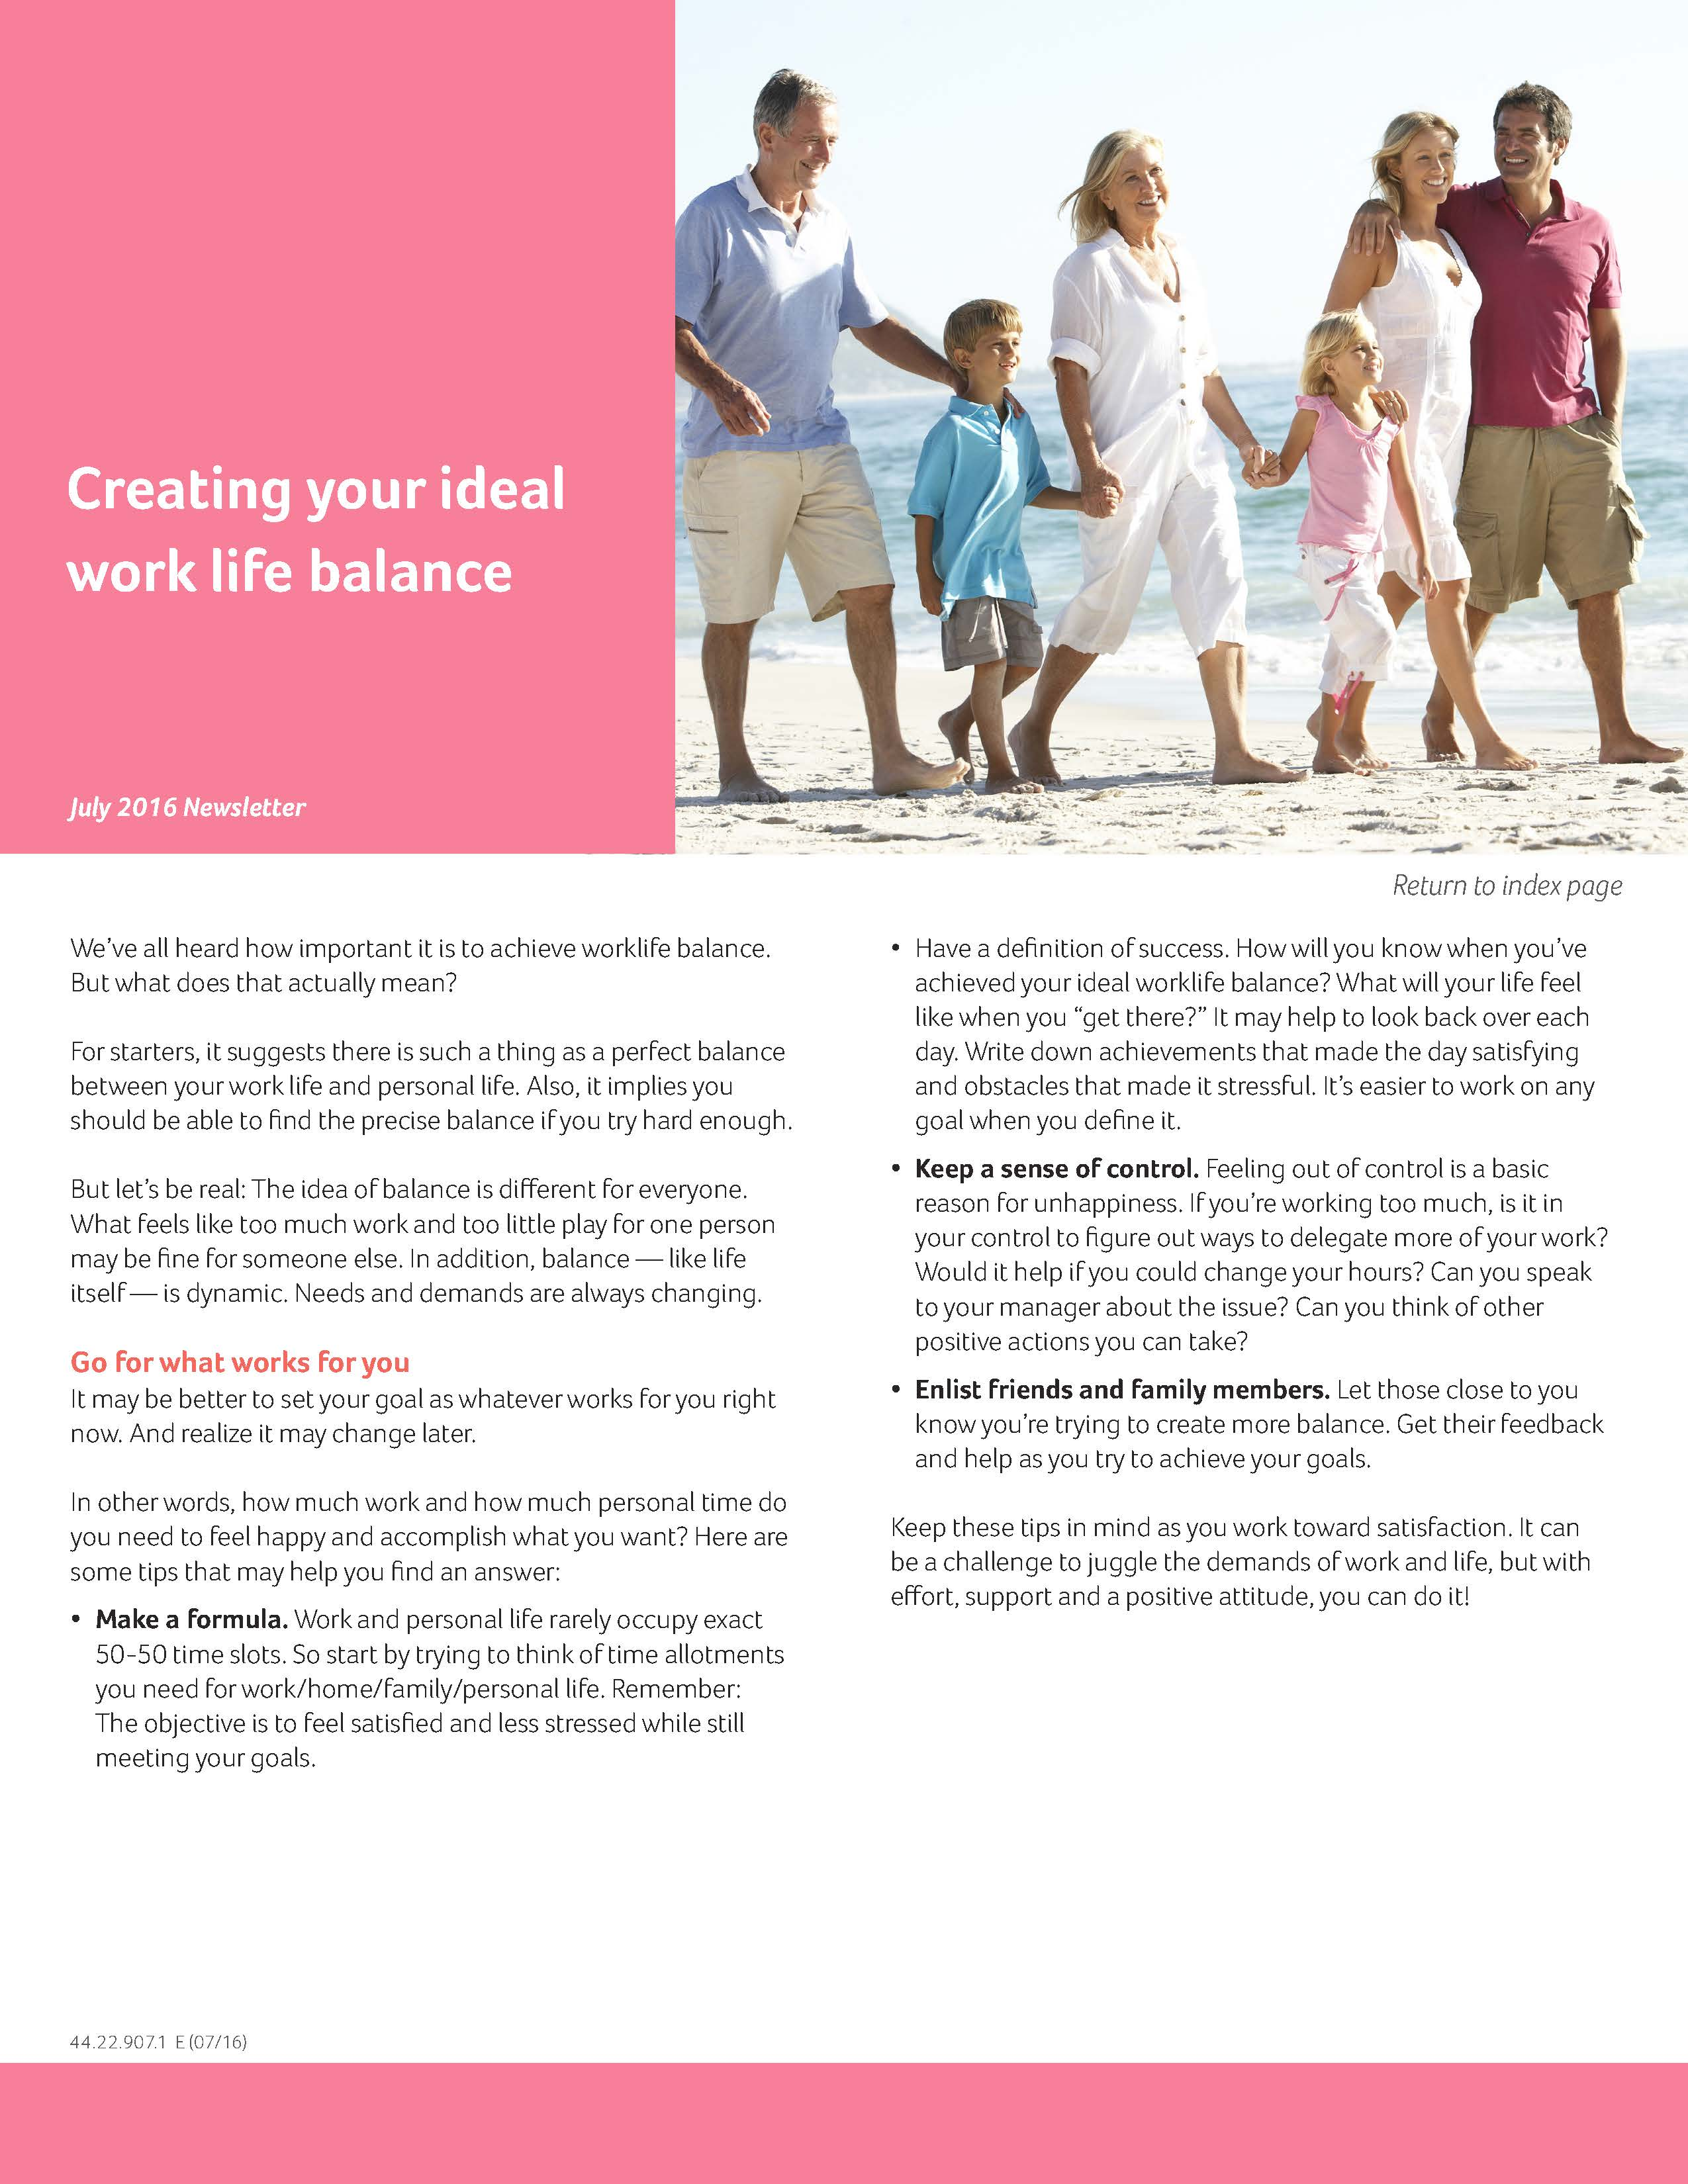 Jul16_MonthlyBulletin_Creating your ideal work life balance